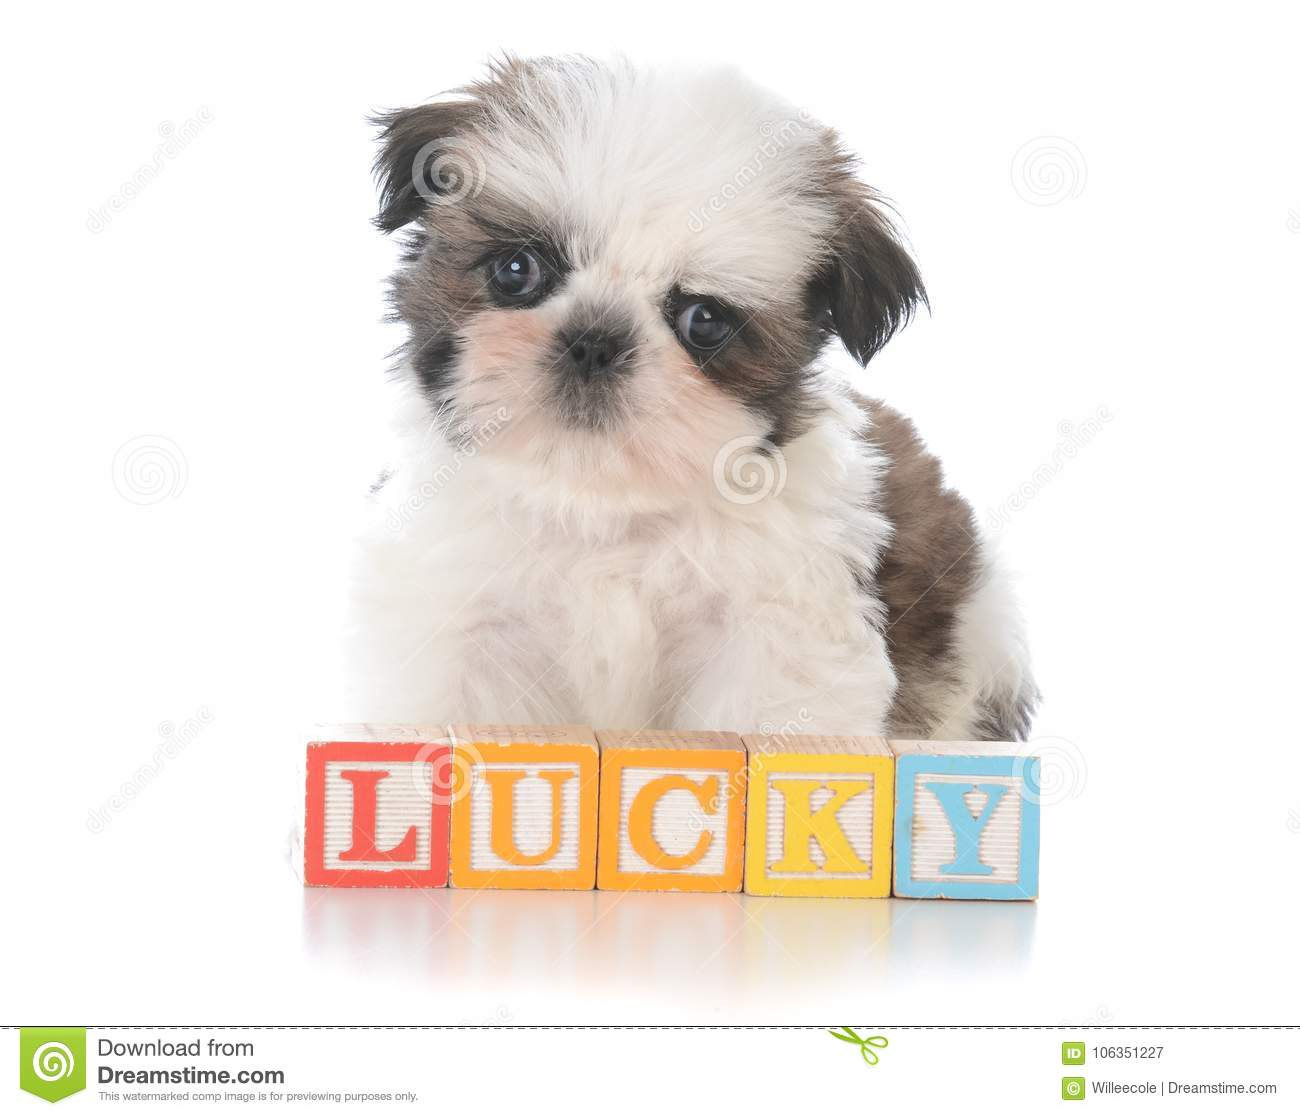 Cute Shih Tzu Puppy With Block Letters Stock Image Image Of Purebred Emotion 106351227